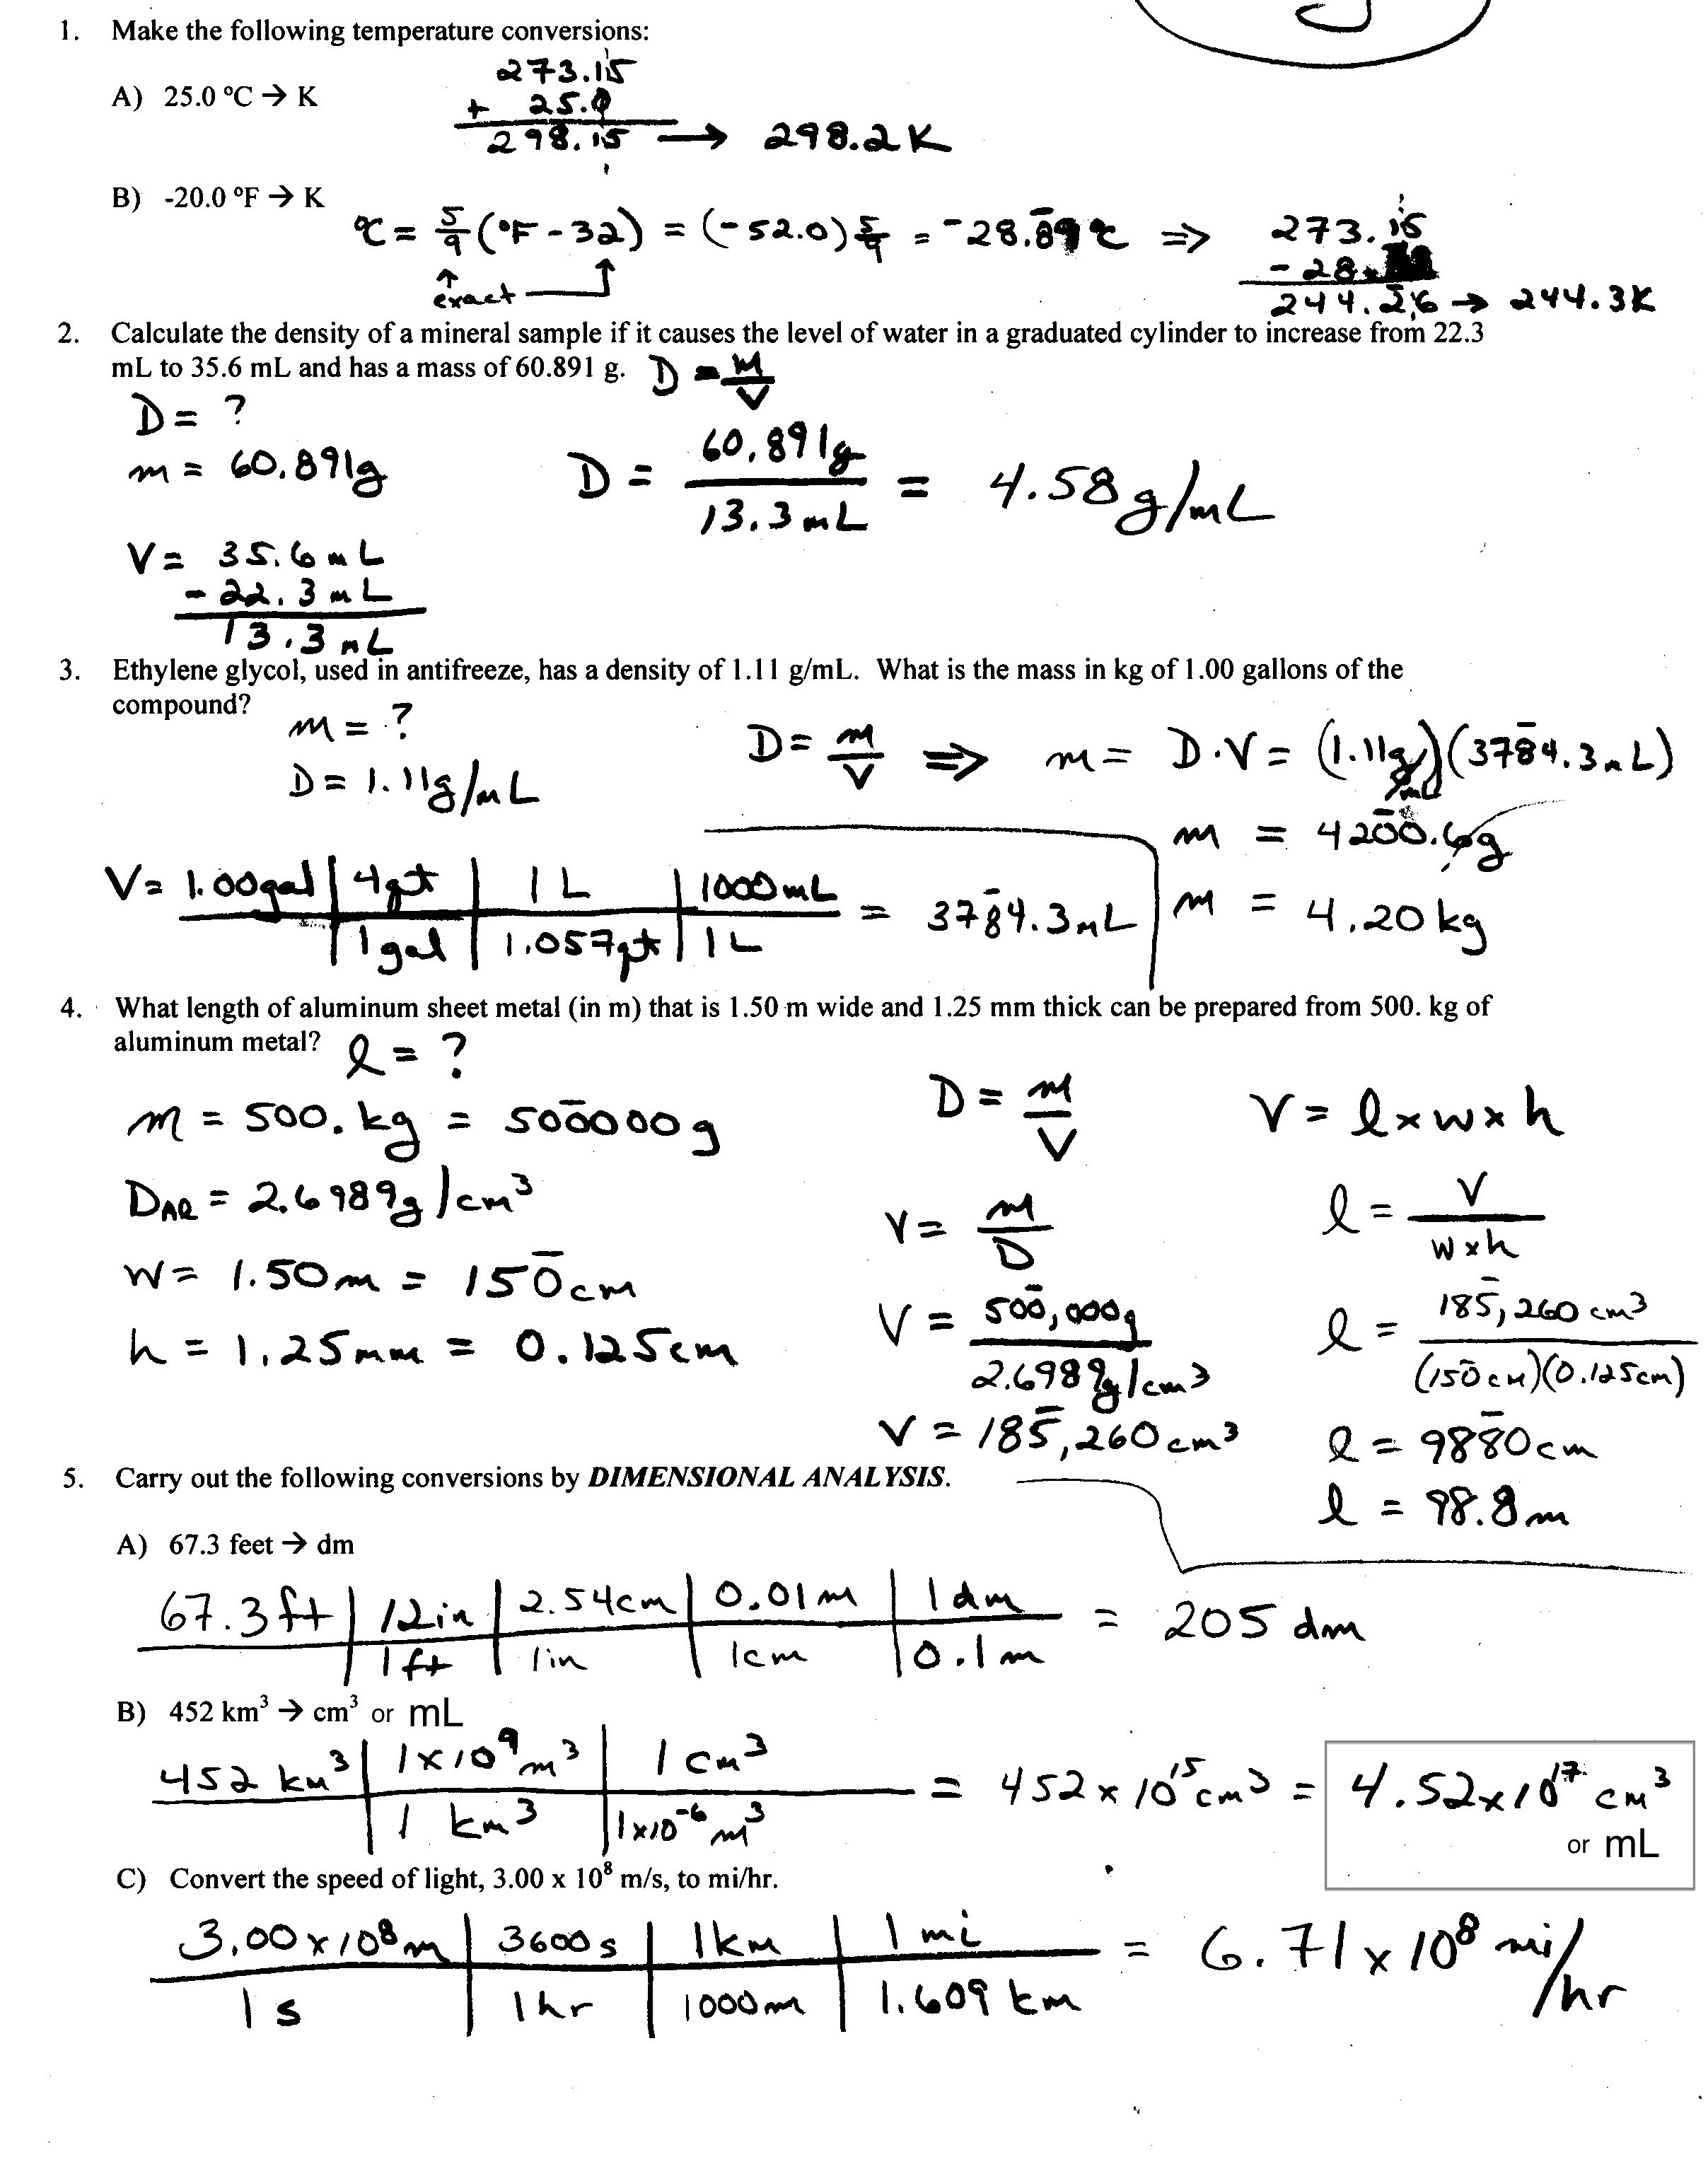 Printables Dimensional Analysis Worksheet With Answers chem 192 lecture dimensional analysis 2 answer key